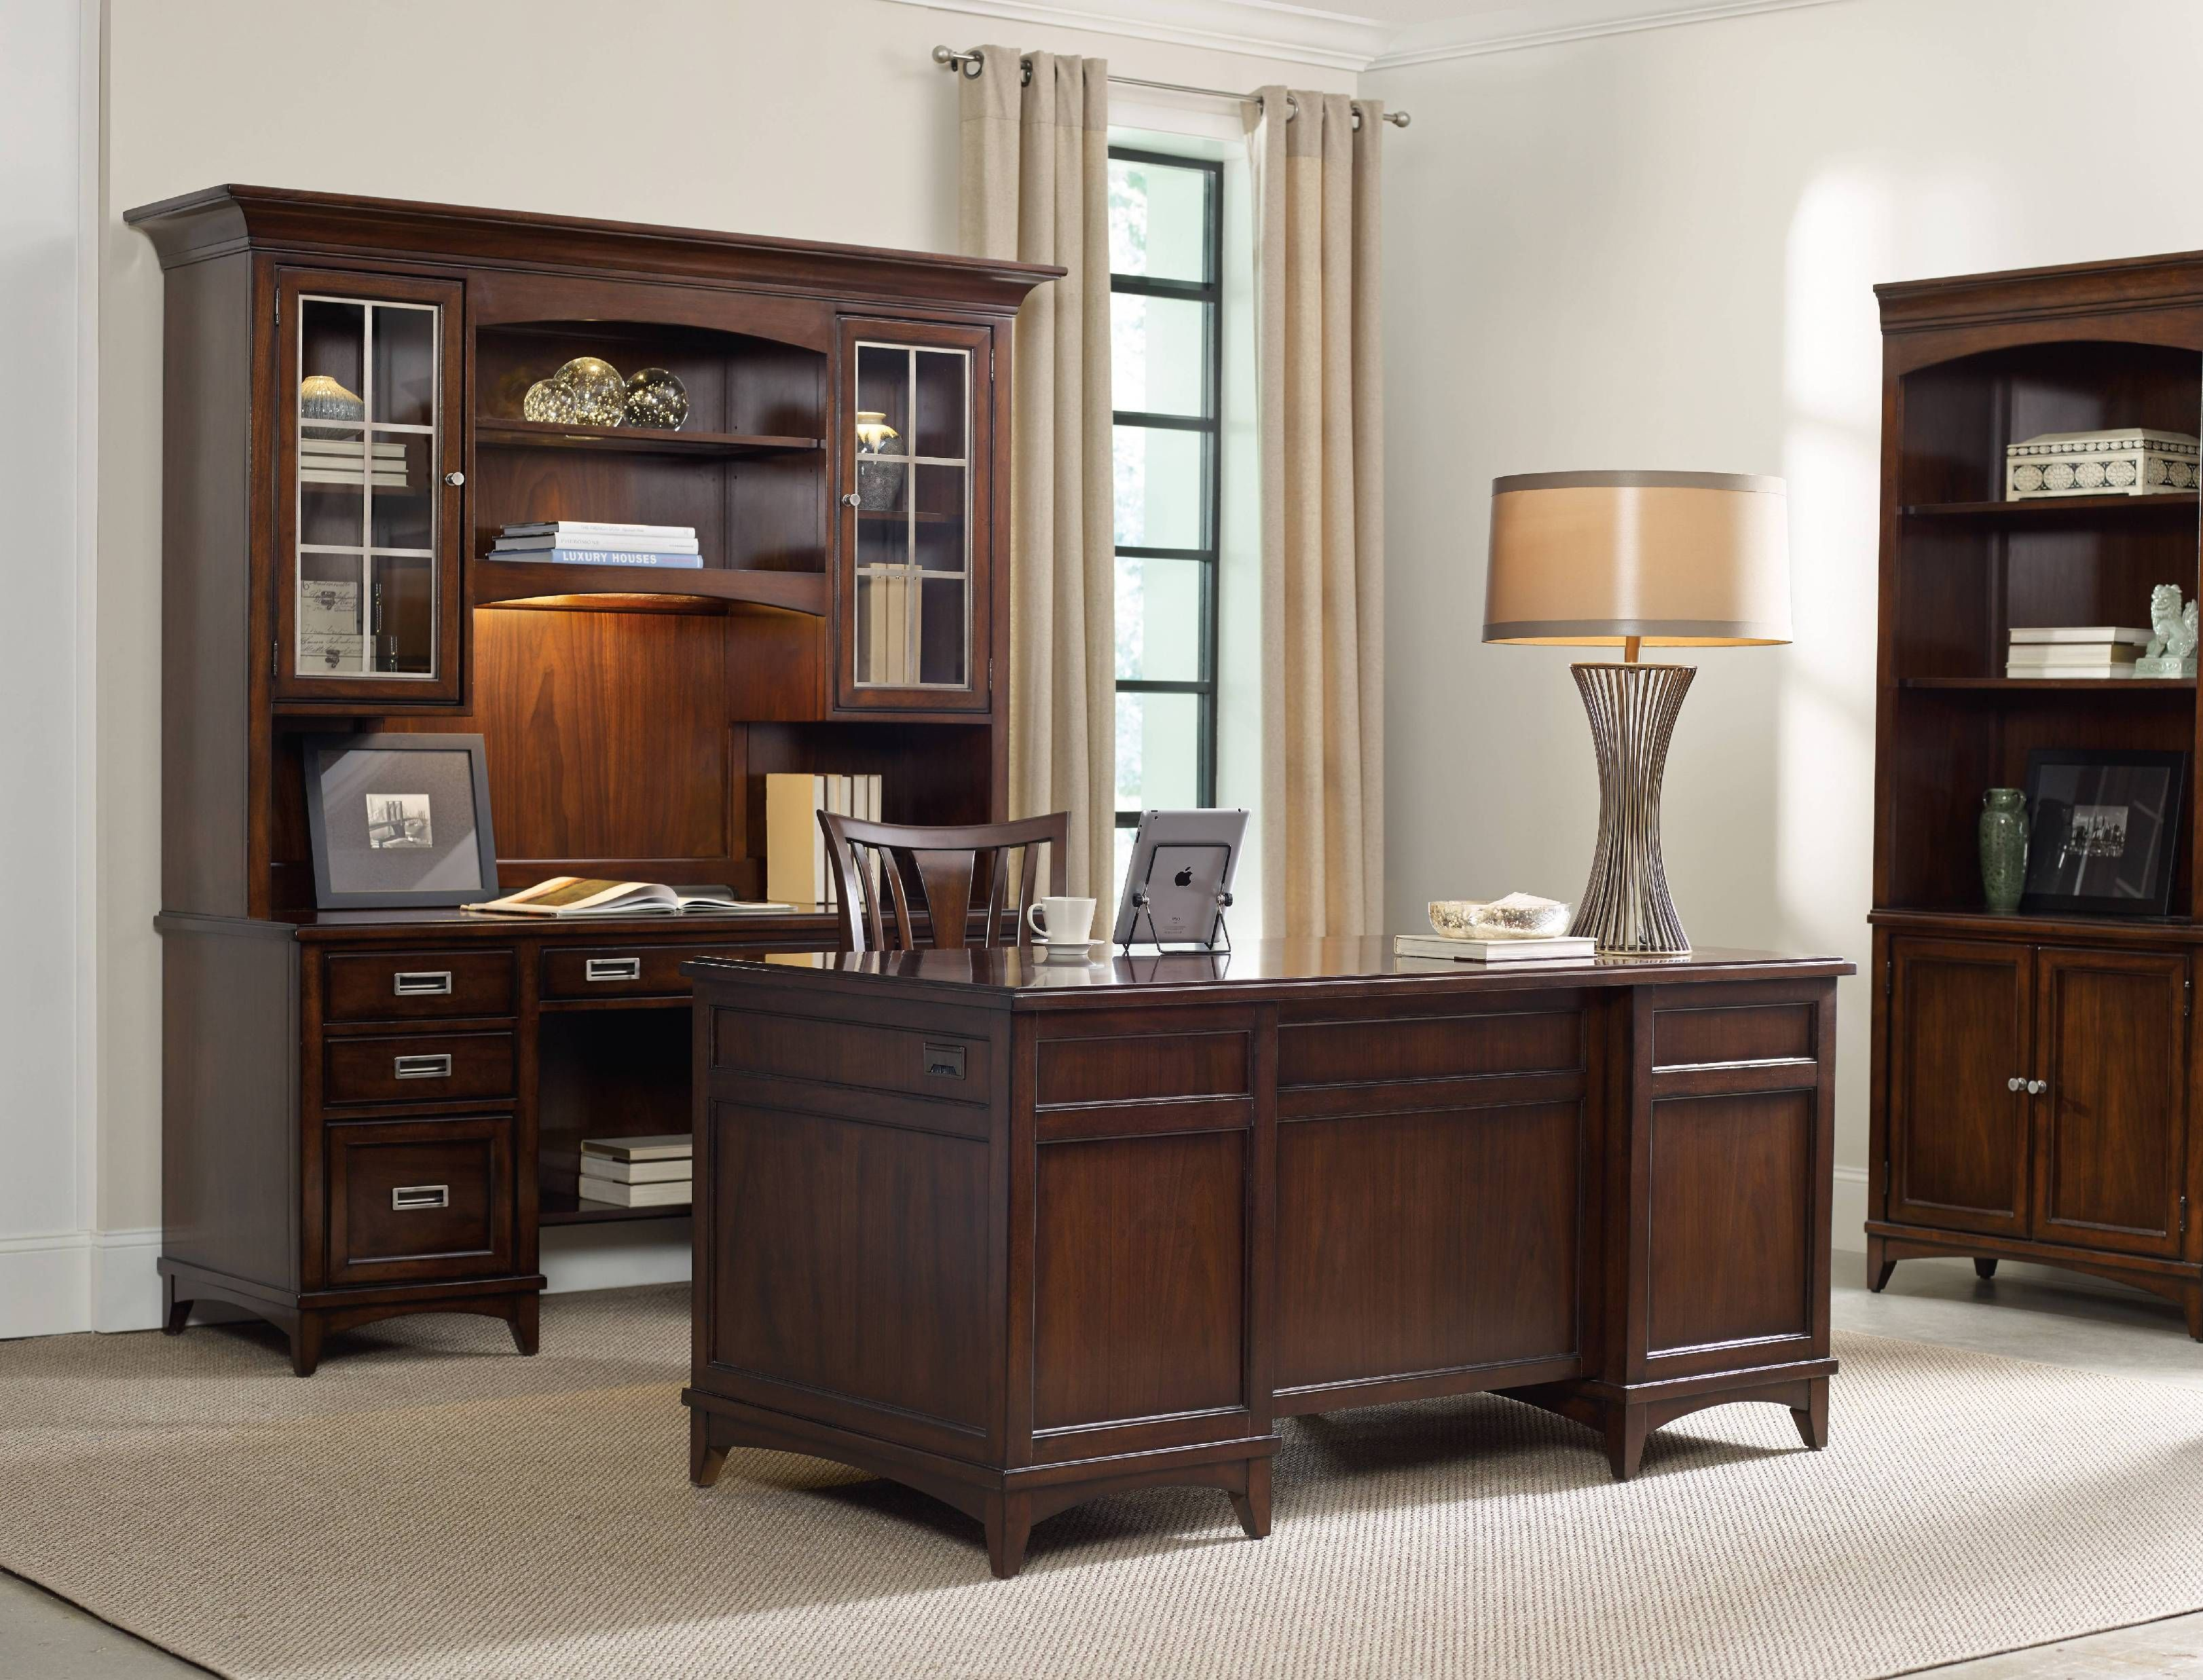 Hooker Furniture Home Office Inspiration Hooker Furniture Home Office Latitude Executive Desk 516710562 . Design Decoration